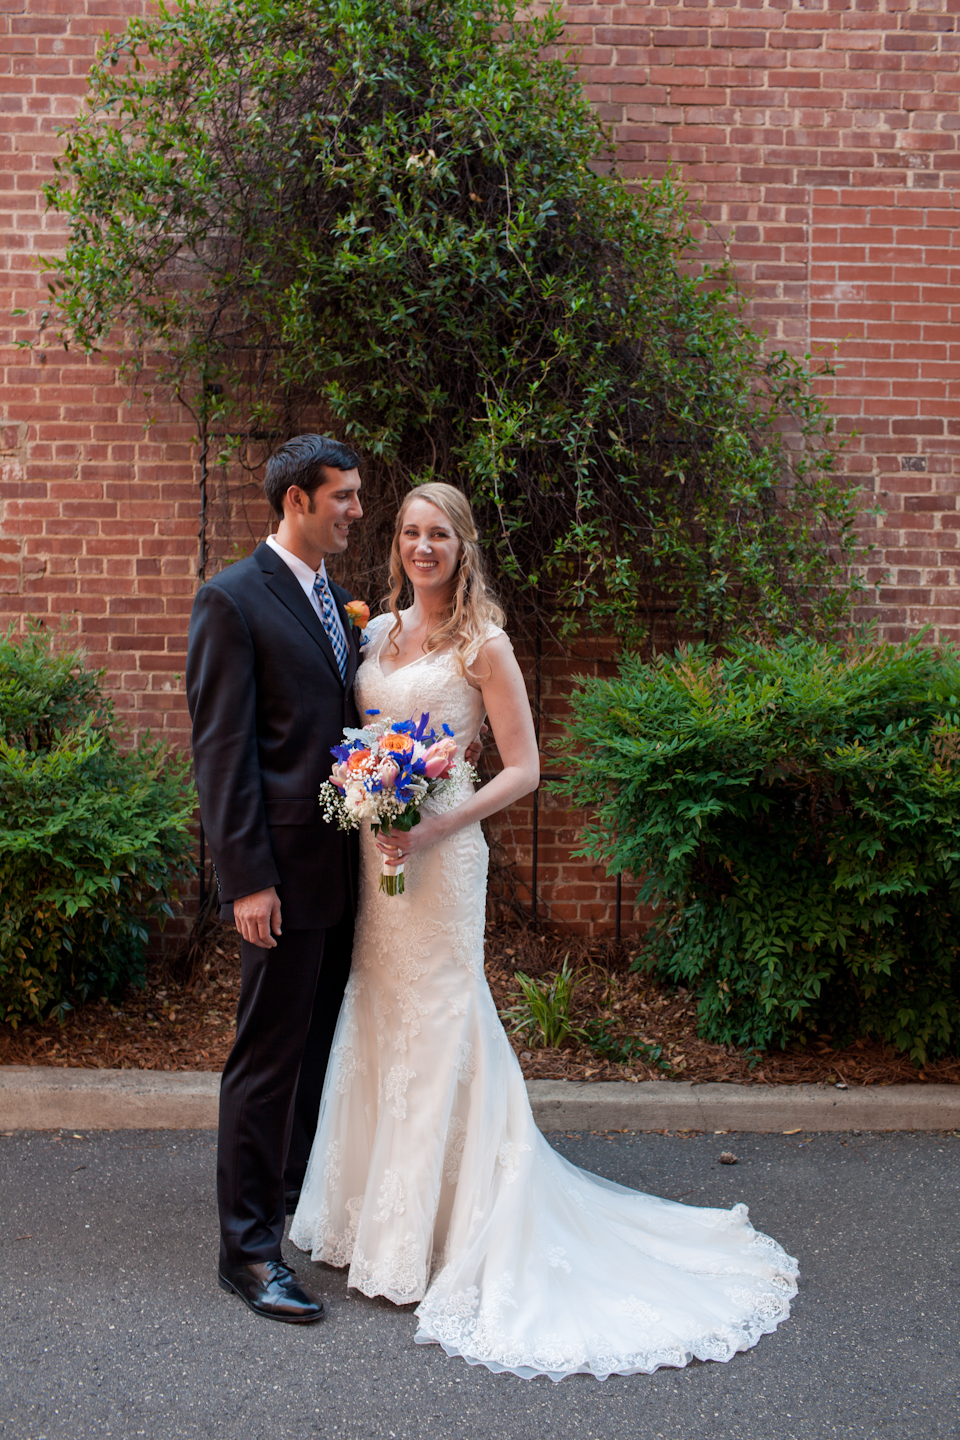 byronssouthendweddingcharlotteweddingphotographeruptownwedding22.jpg